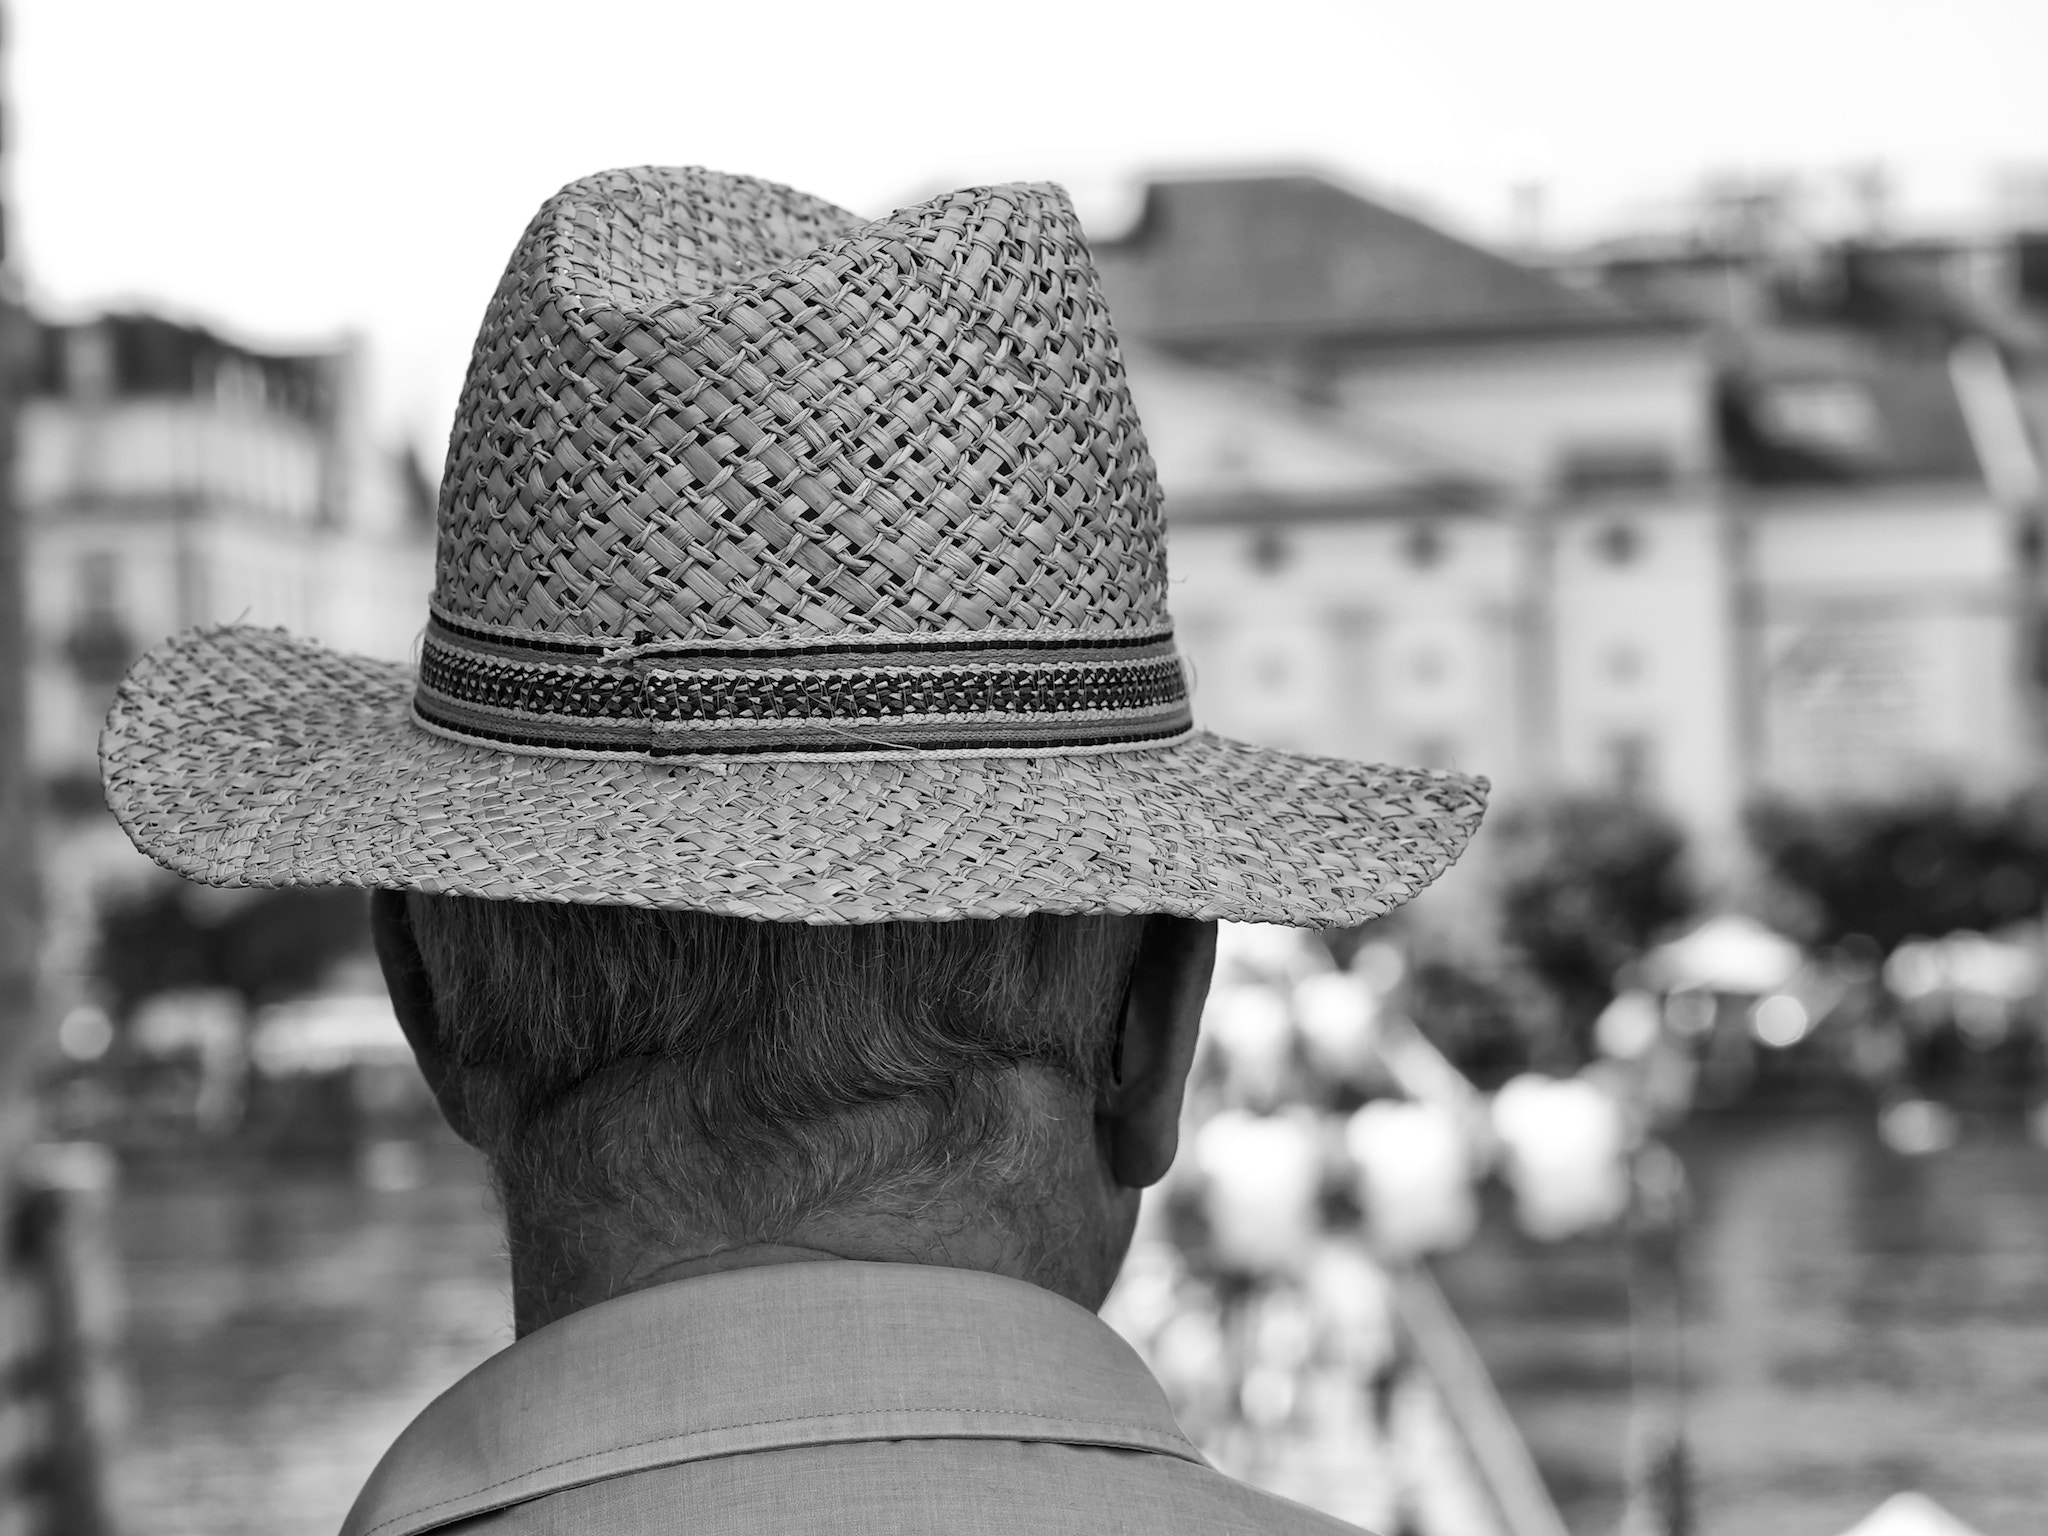 Photograph straw hat by Alexander Ess on 500px